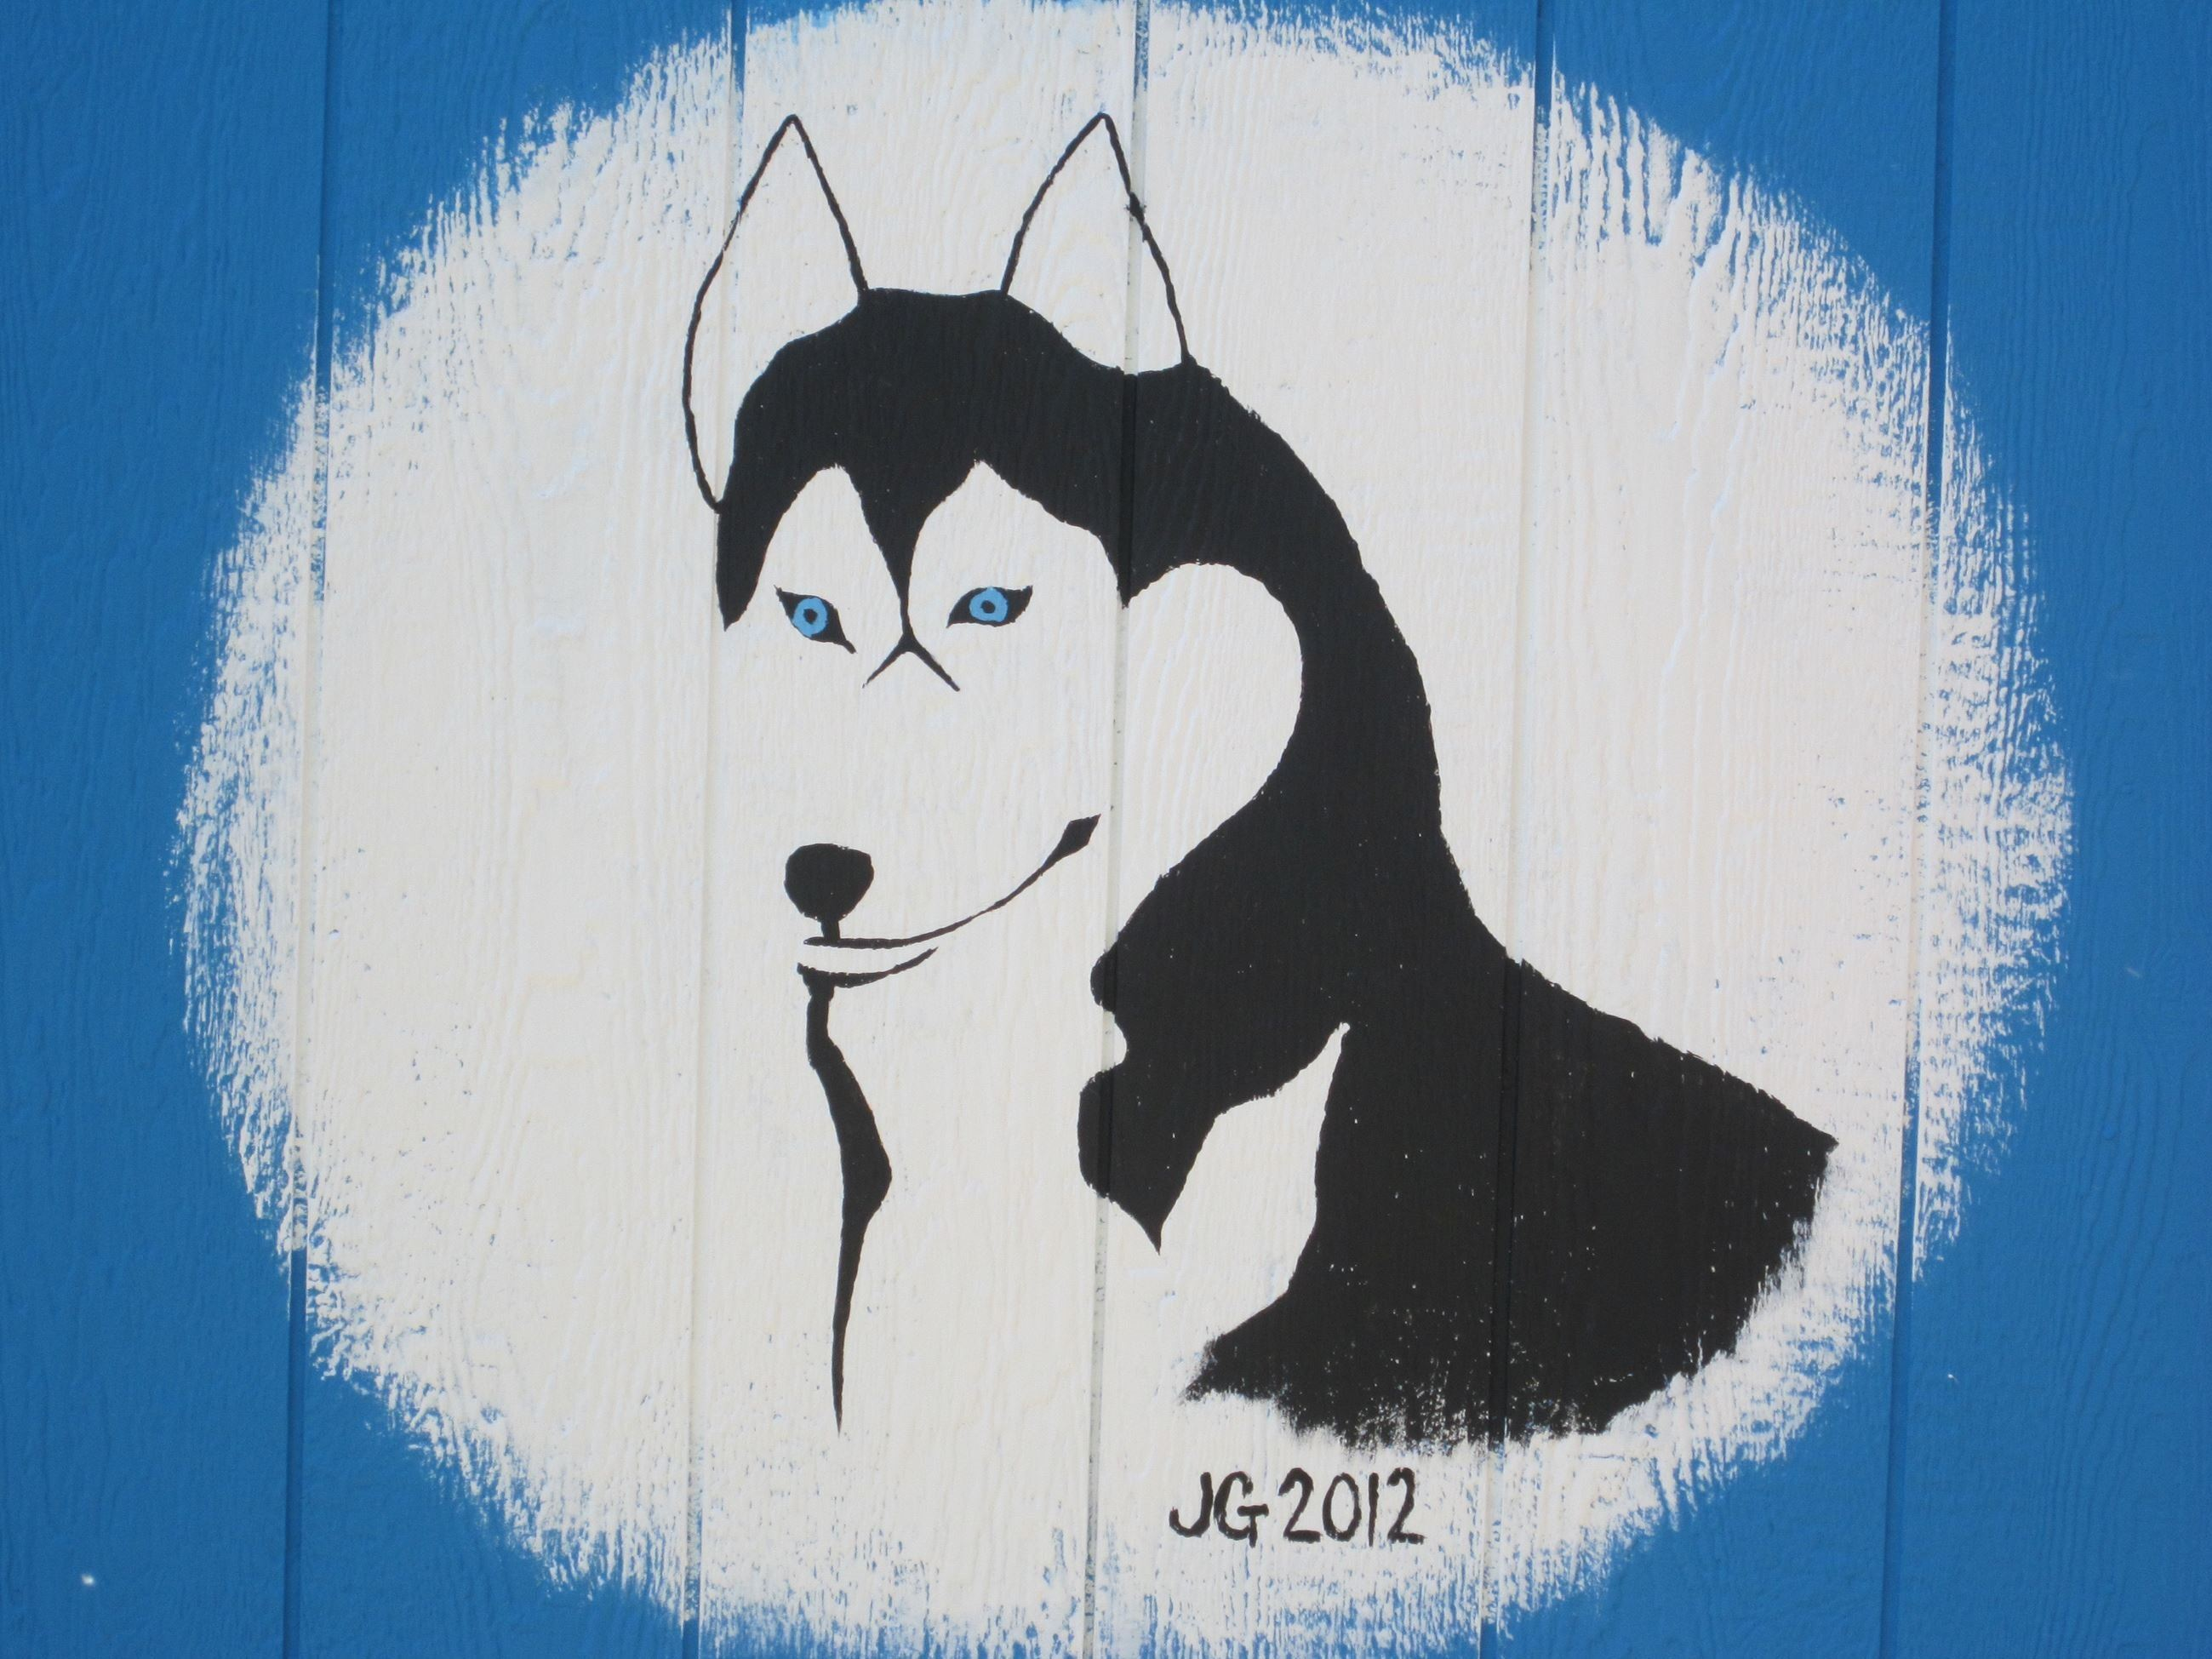 A husky painted on the ECYF garden shed by a resident in 2012